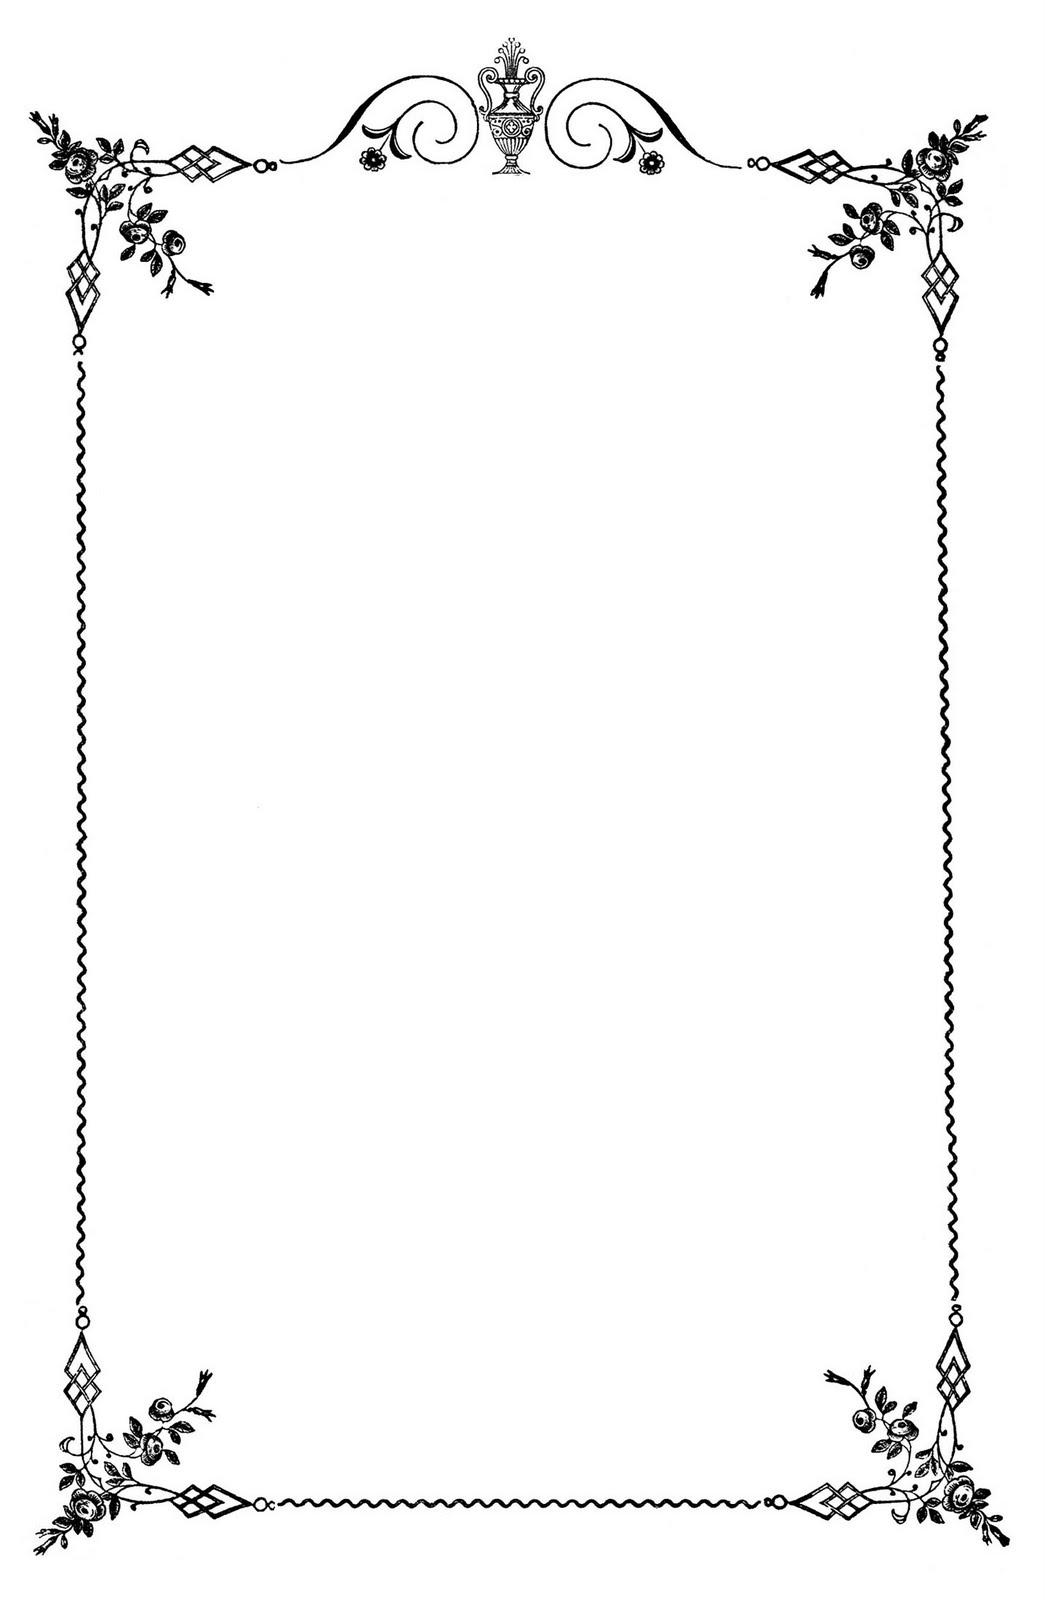 Clipart frames and borders wedding - ClipartFest